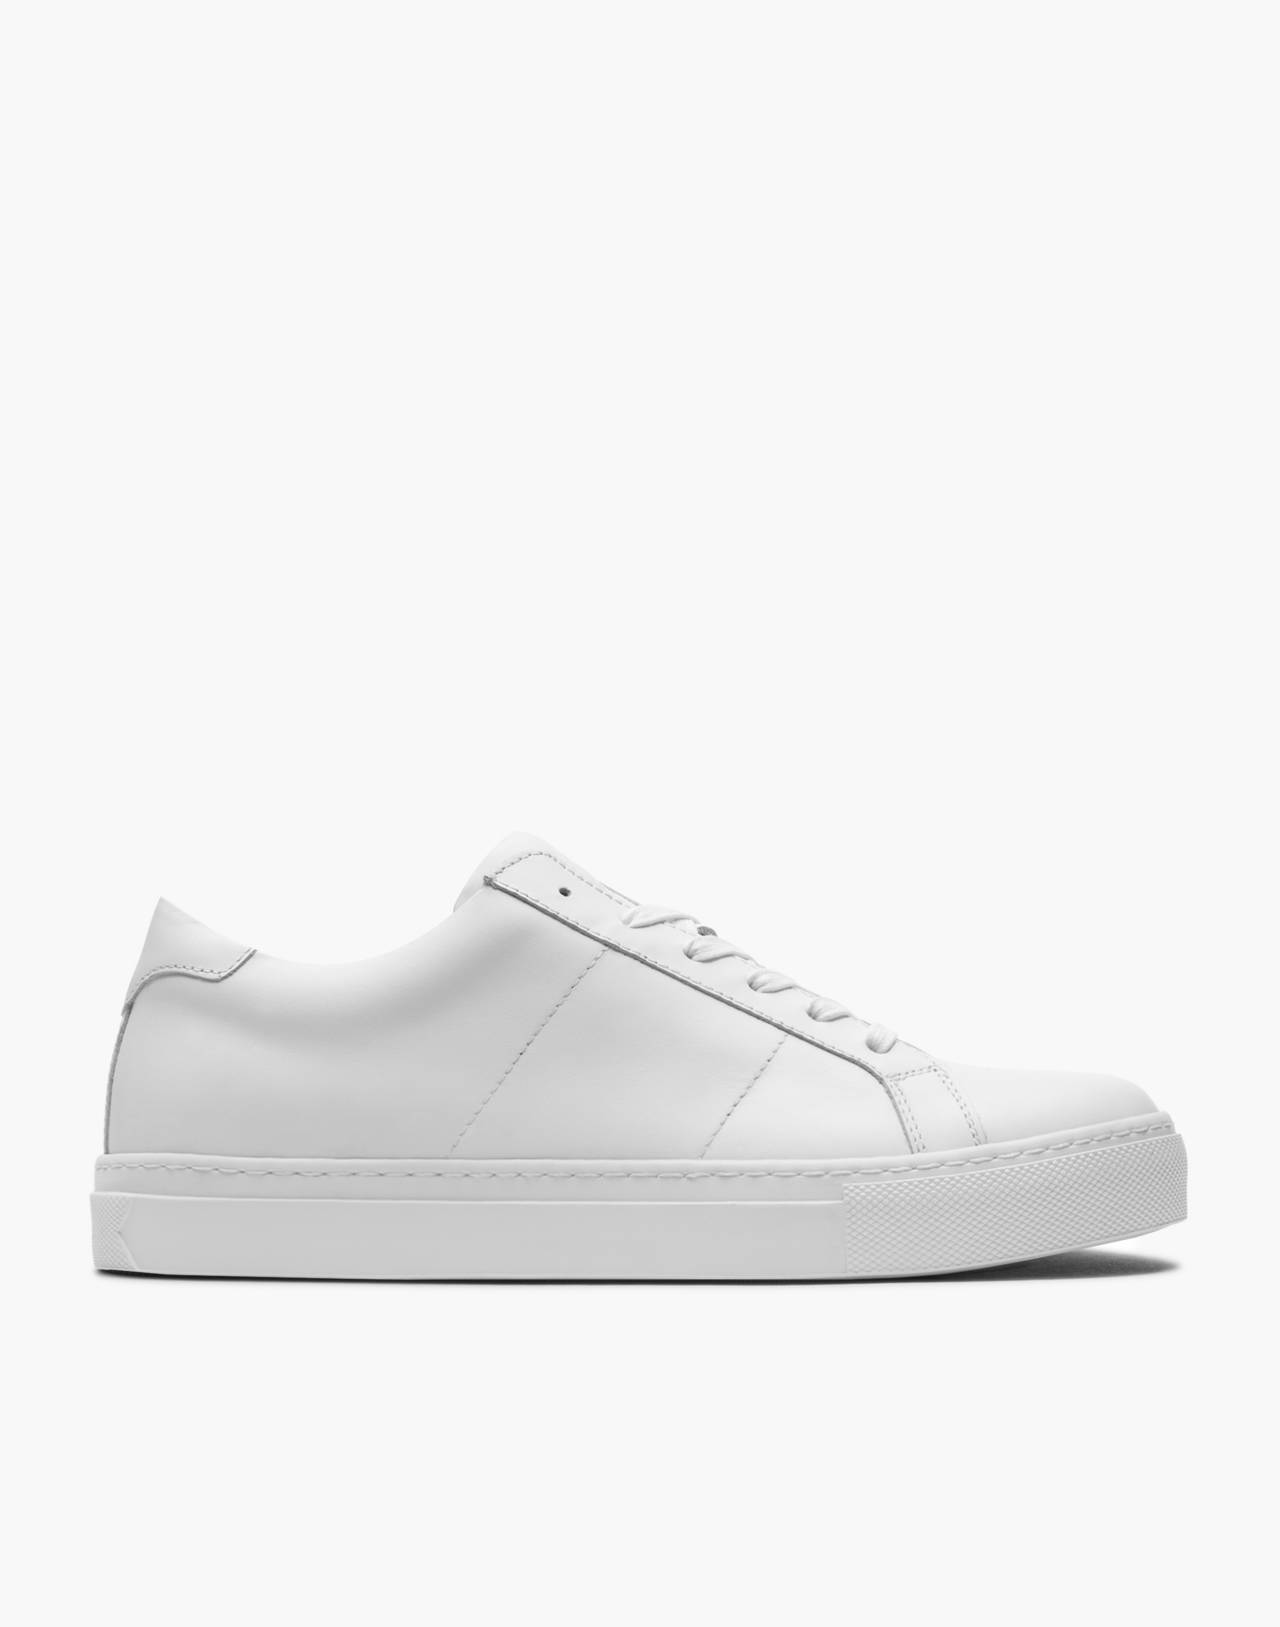 GREATS® Royale Leather Low-Top Sneakers in white image 2